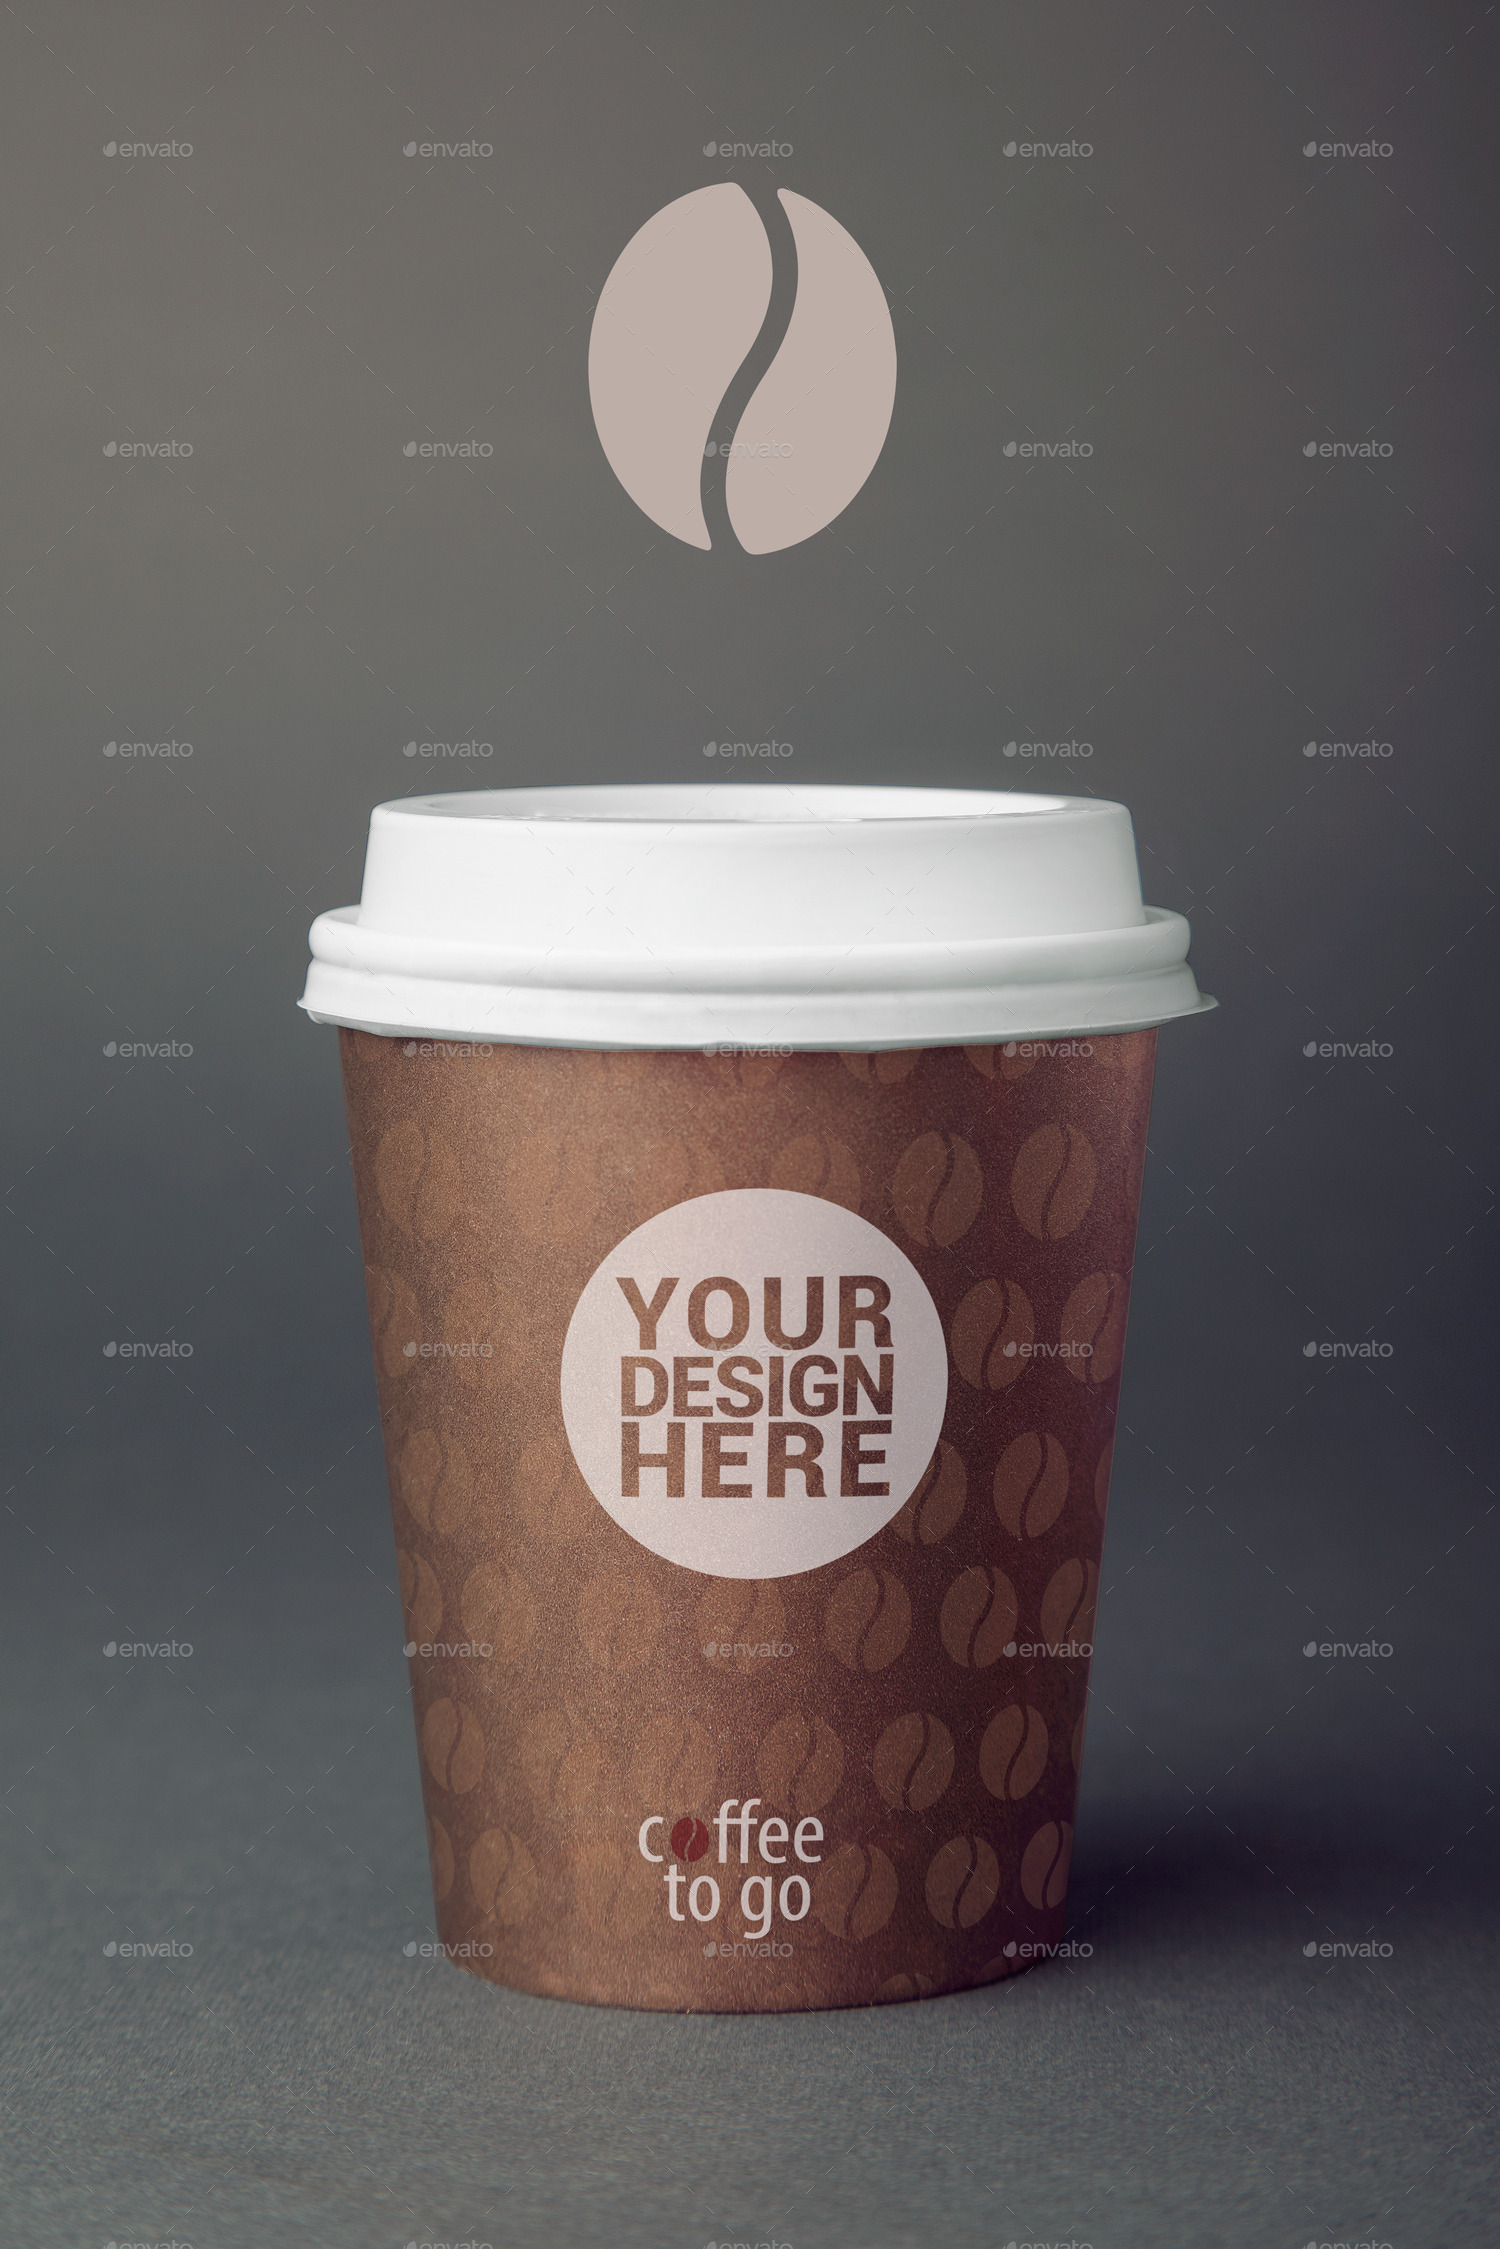 coffee to go cup branding edition 1 photo mockup by mockuplicious graphicriver. Black Bedroom Furniture Sets. Home Design Ideas